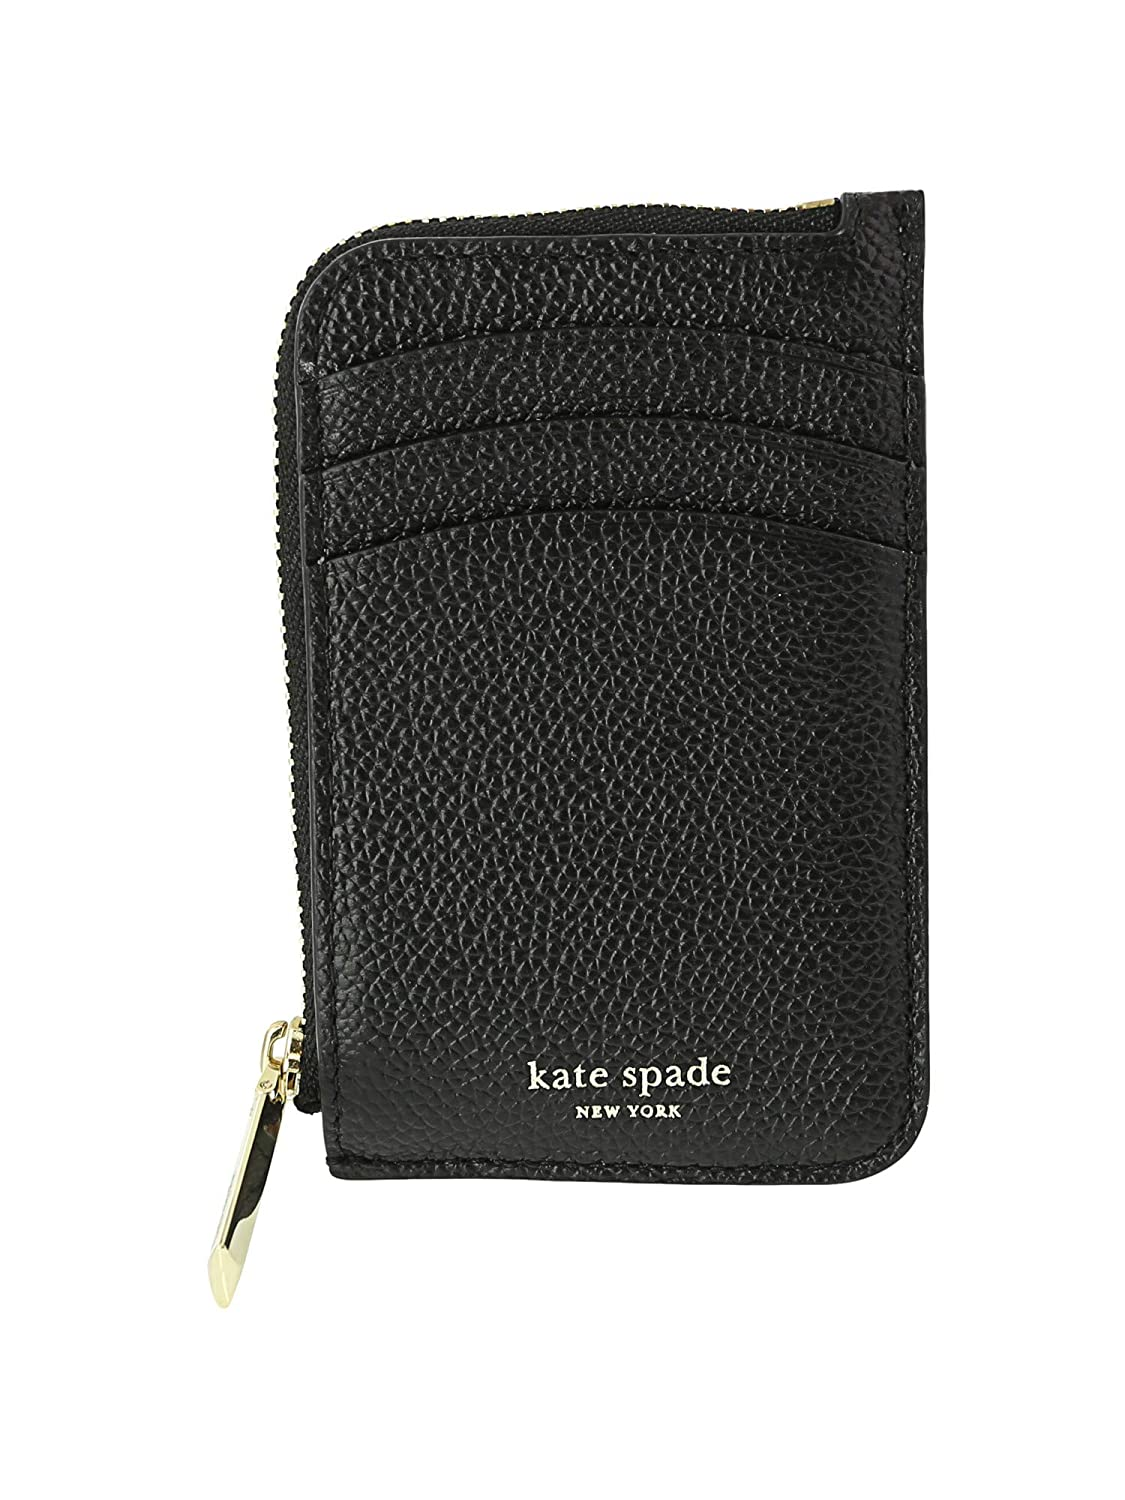 Kate Spade Margaux Leather Wallet  ブラック B07M5H2QL4